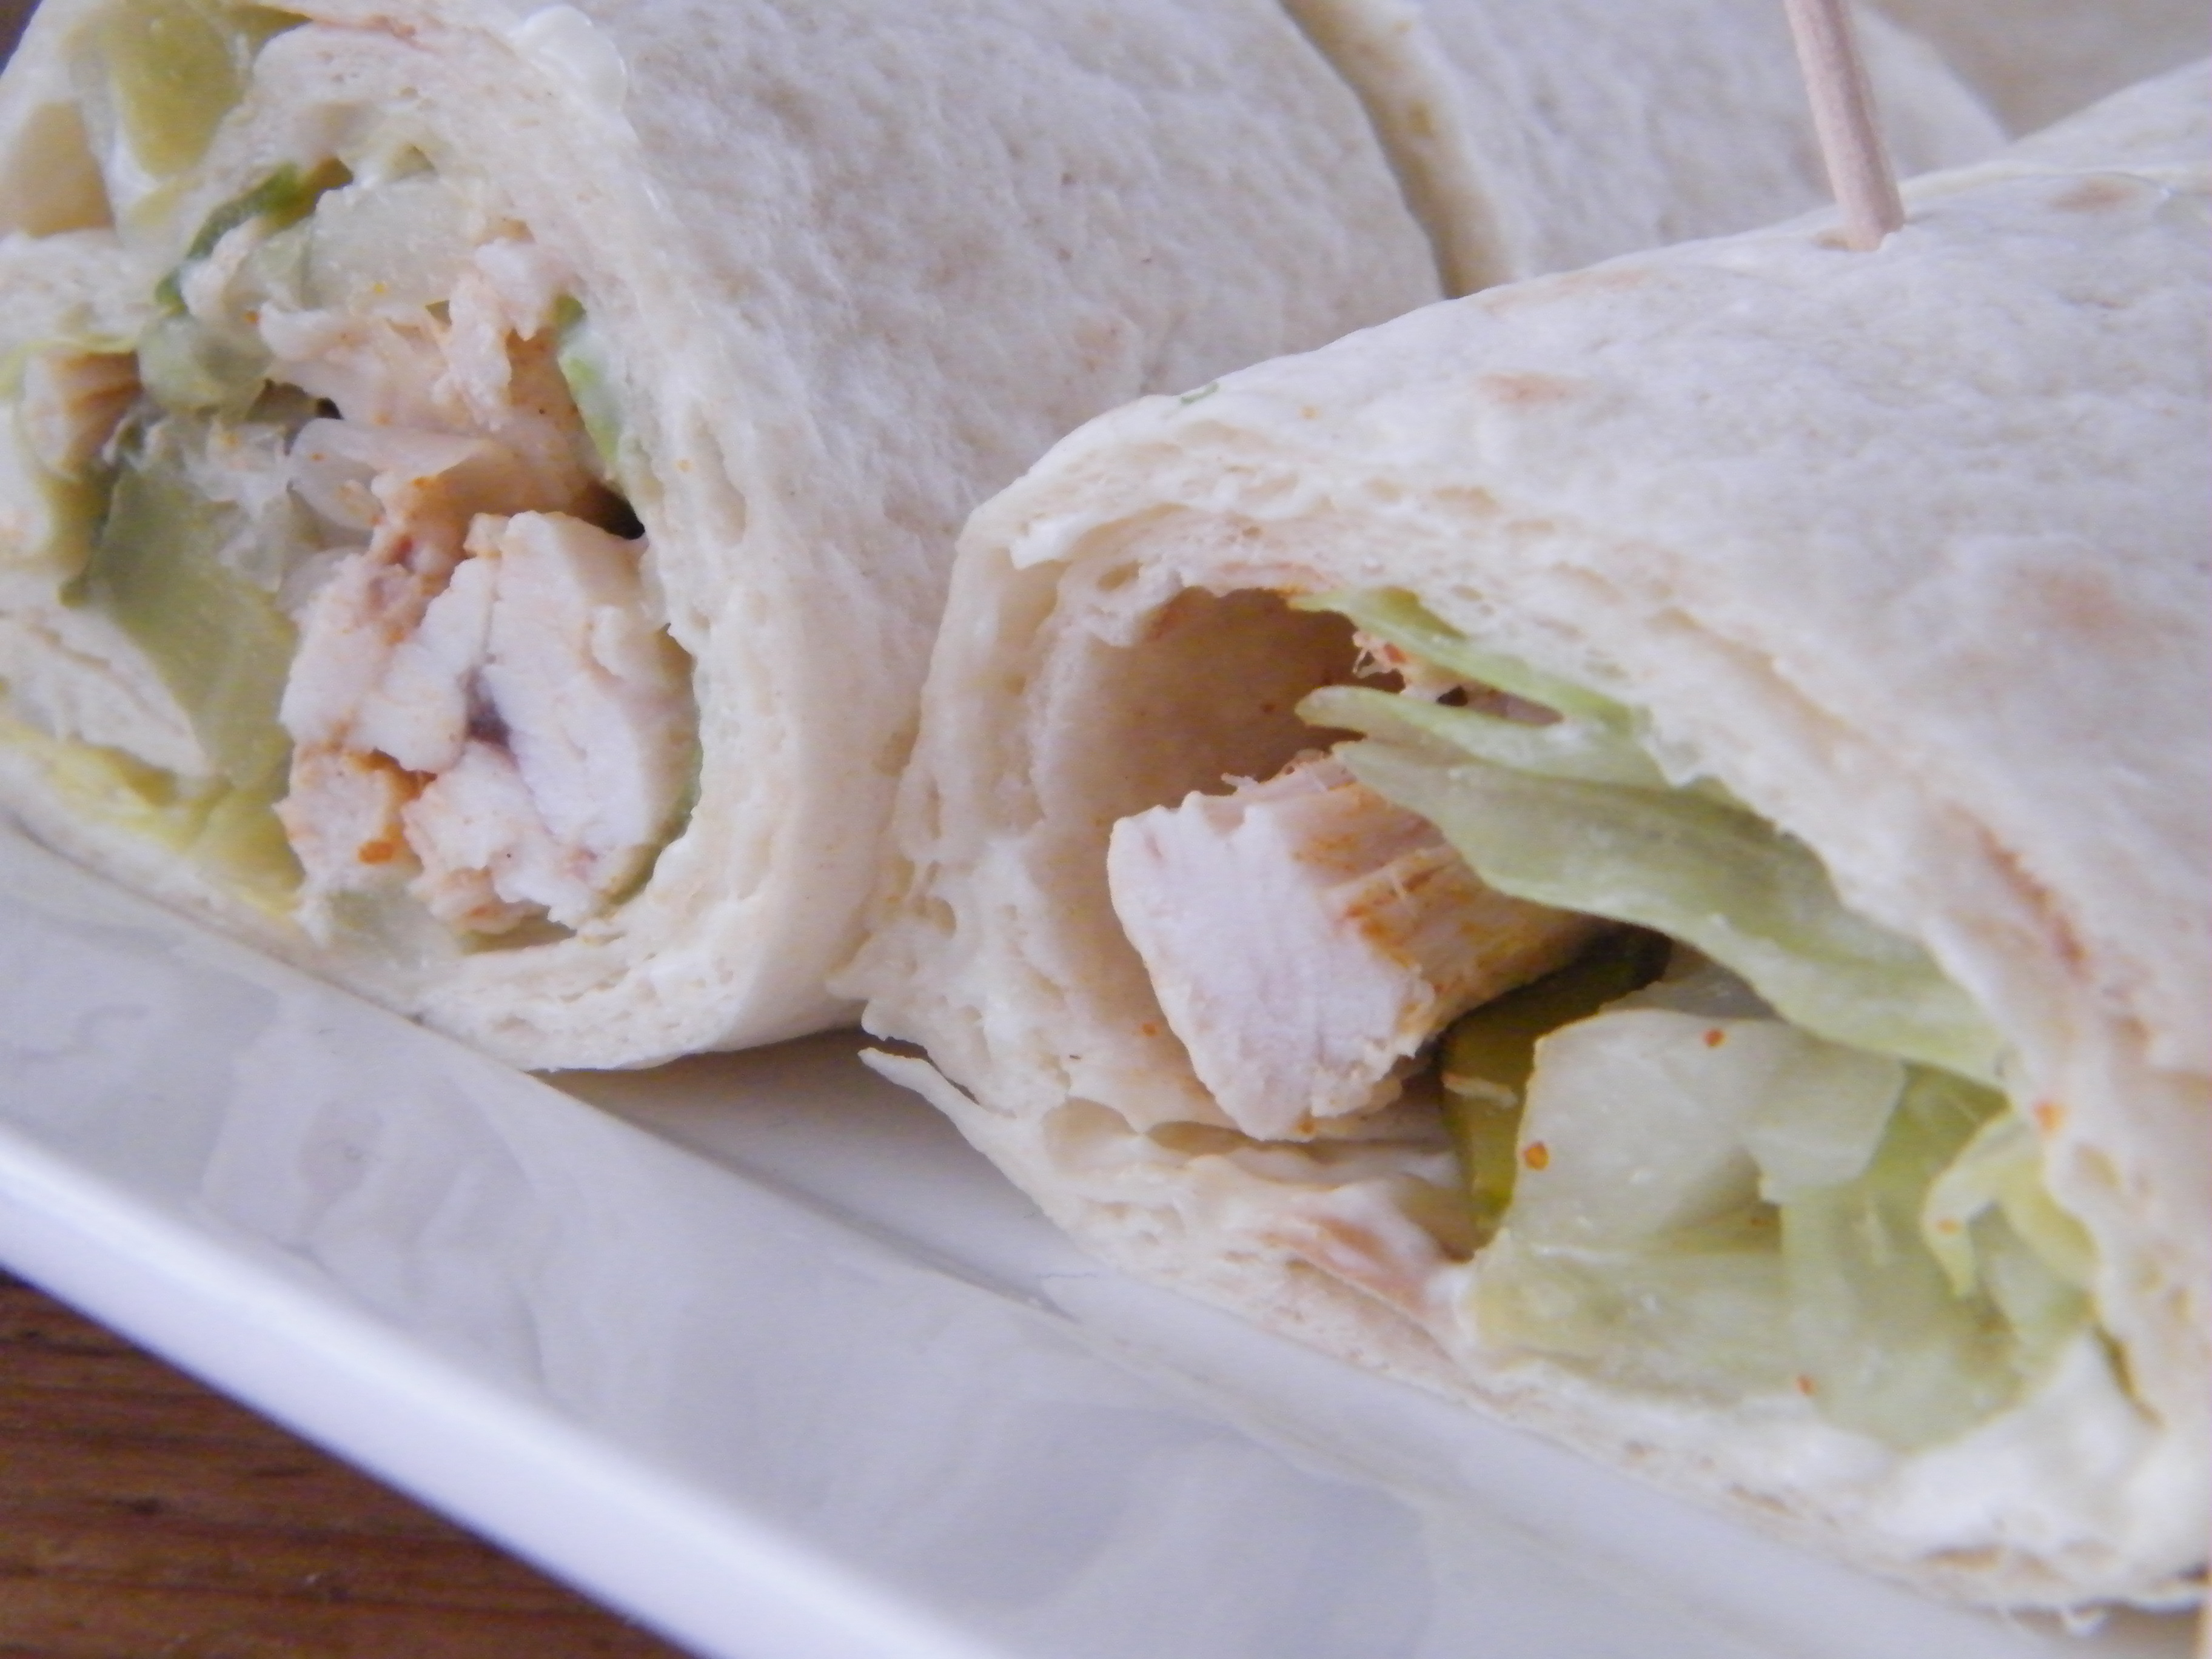 Kruiden Drogen Magnetron Snelle Lunchwraps Ohmyfoodness